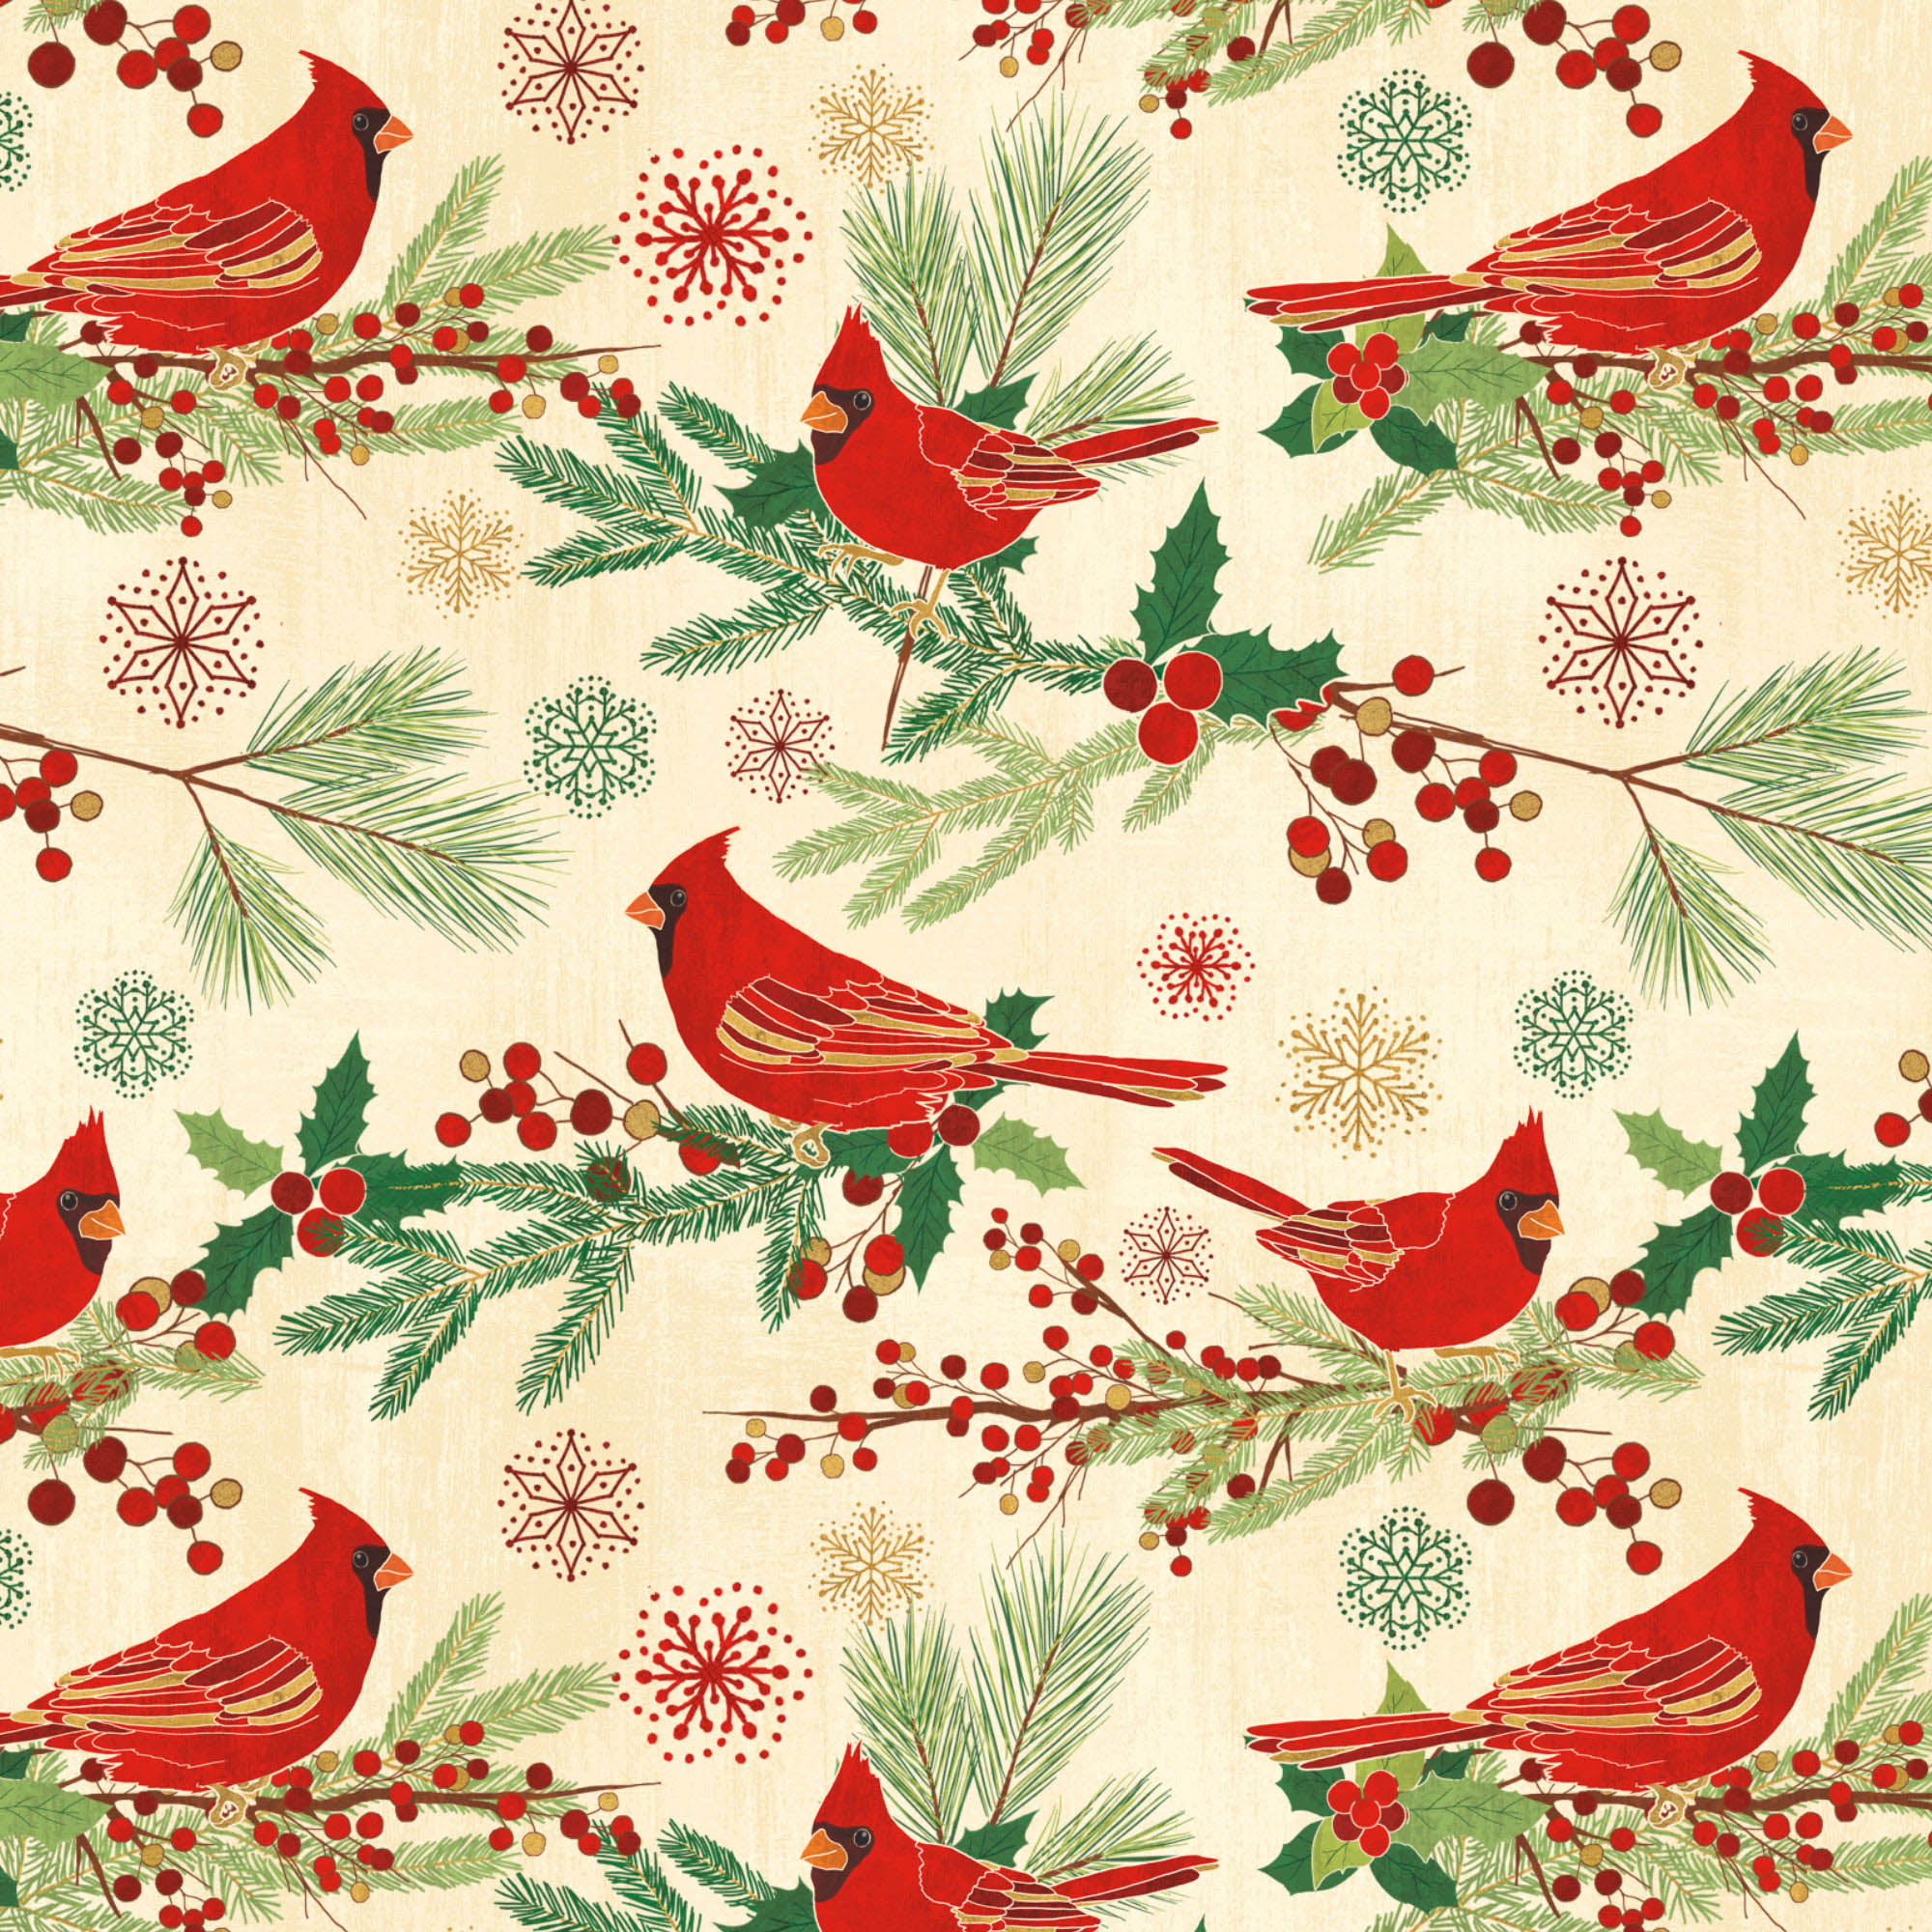 """DAVID TEXTILES, INC. CHRISTMAS CARDINALS COTTON FABRIC BY THE YARD 44"""" WIDE"""